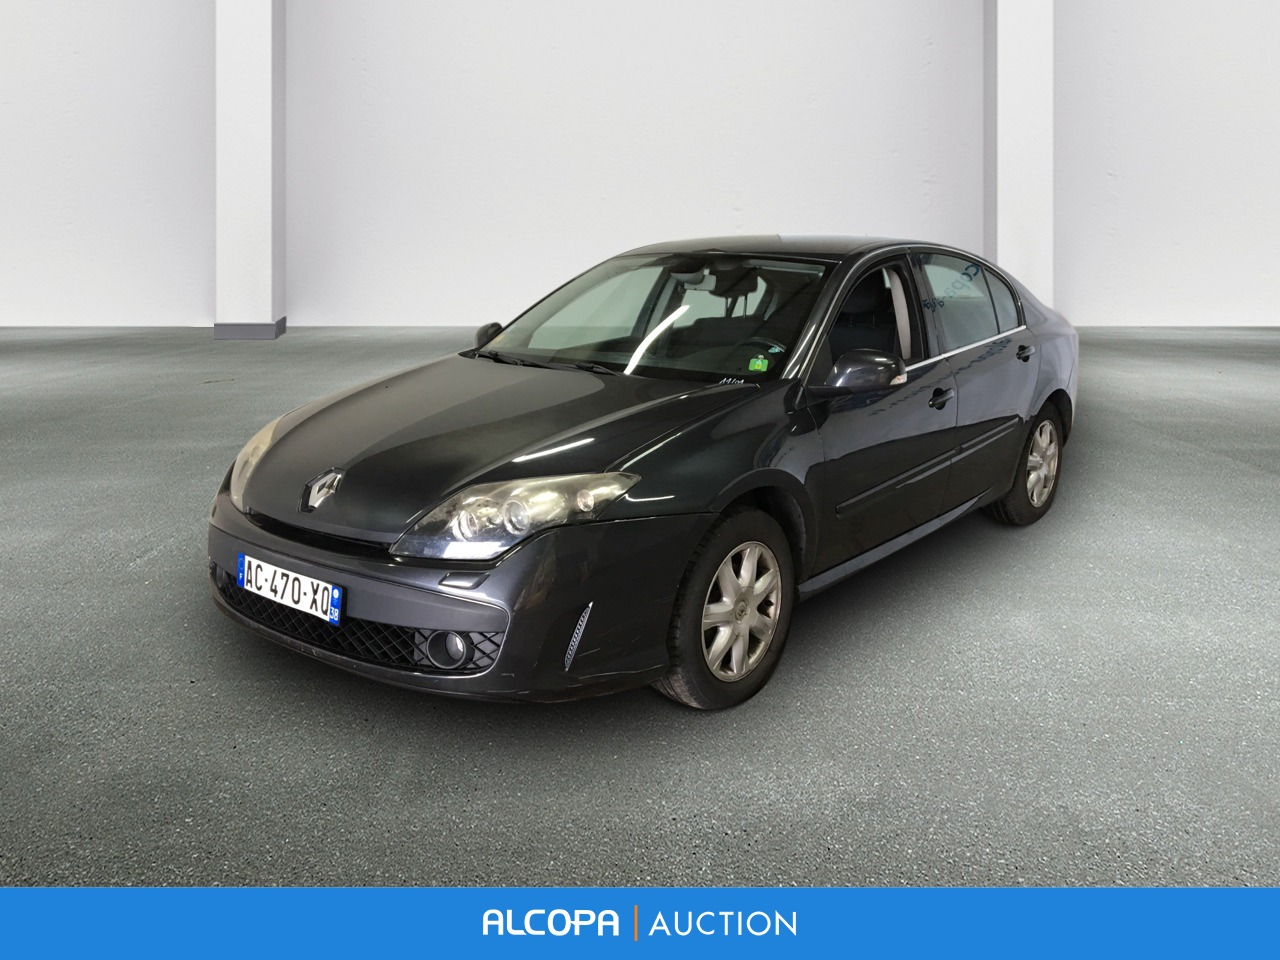 renault laguna iii laguna iii 1 5 dci 110 eco2 black edition carminat alcopa auction. Black Bedroom Furniture Sets. Home Design Ideas